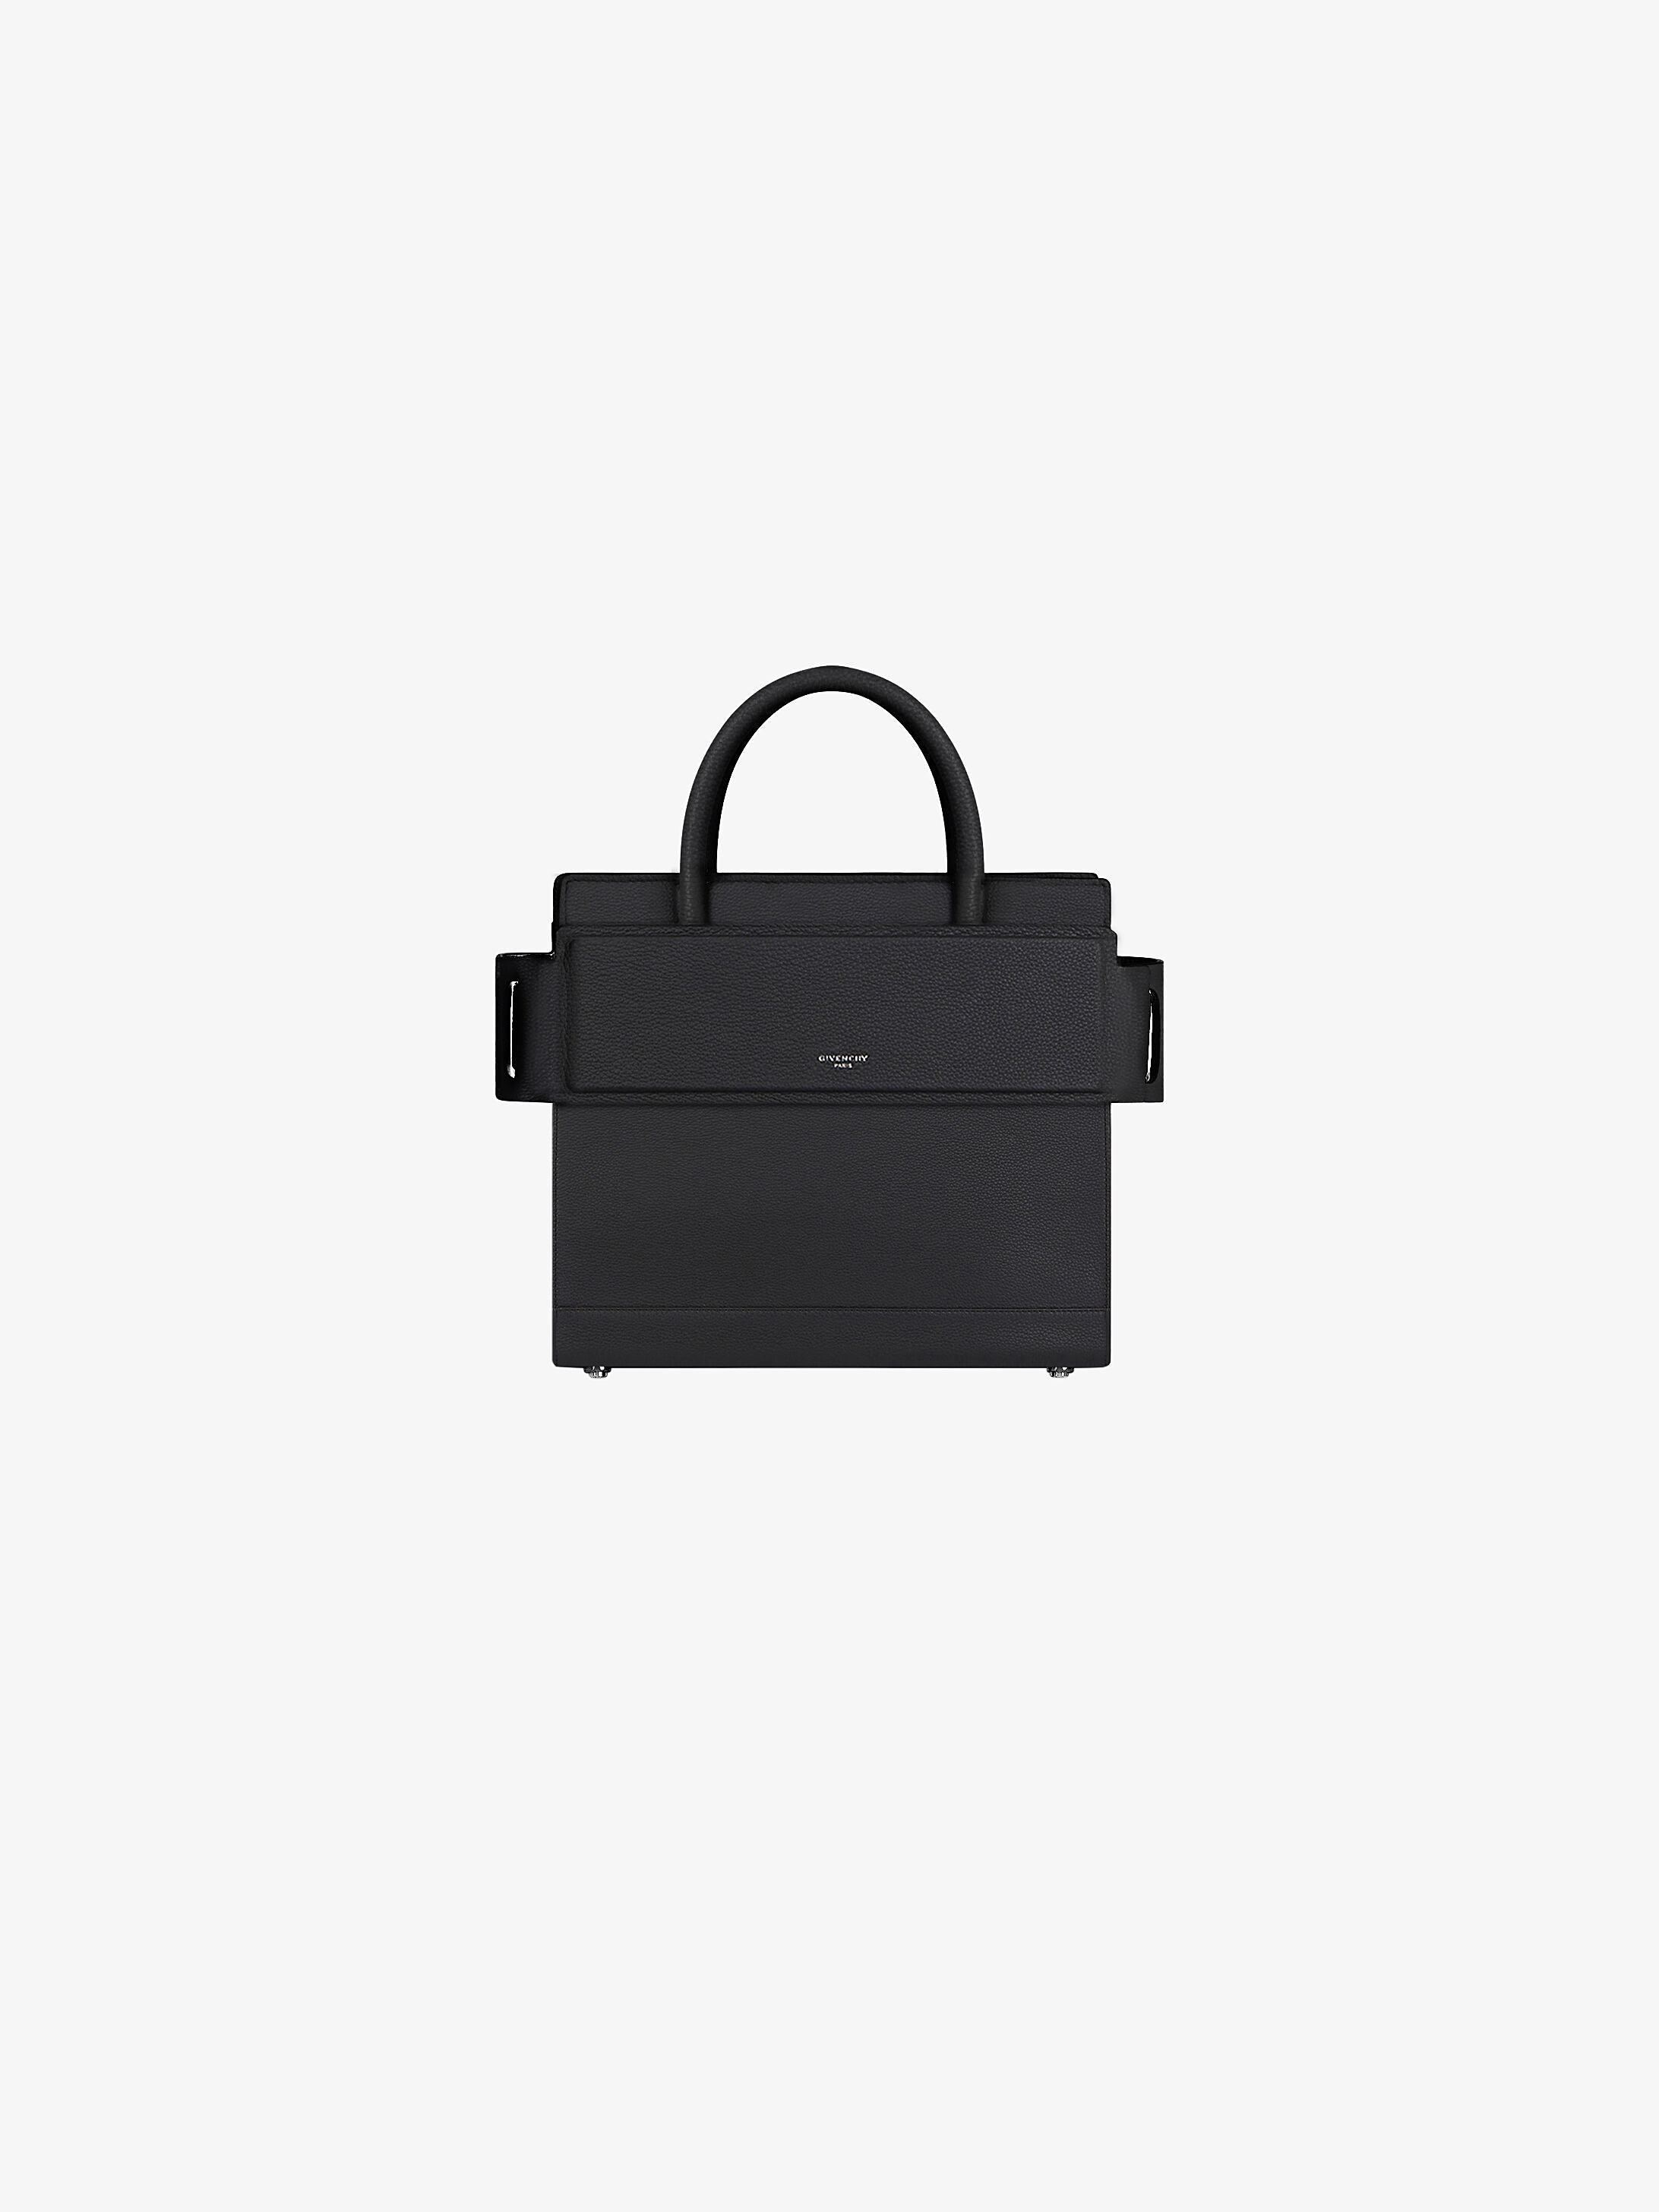 Women s Handbags collection by Givenchy.  e56cd20c83